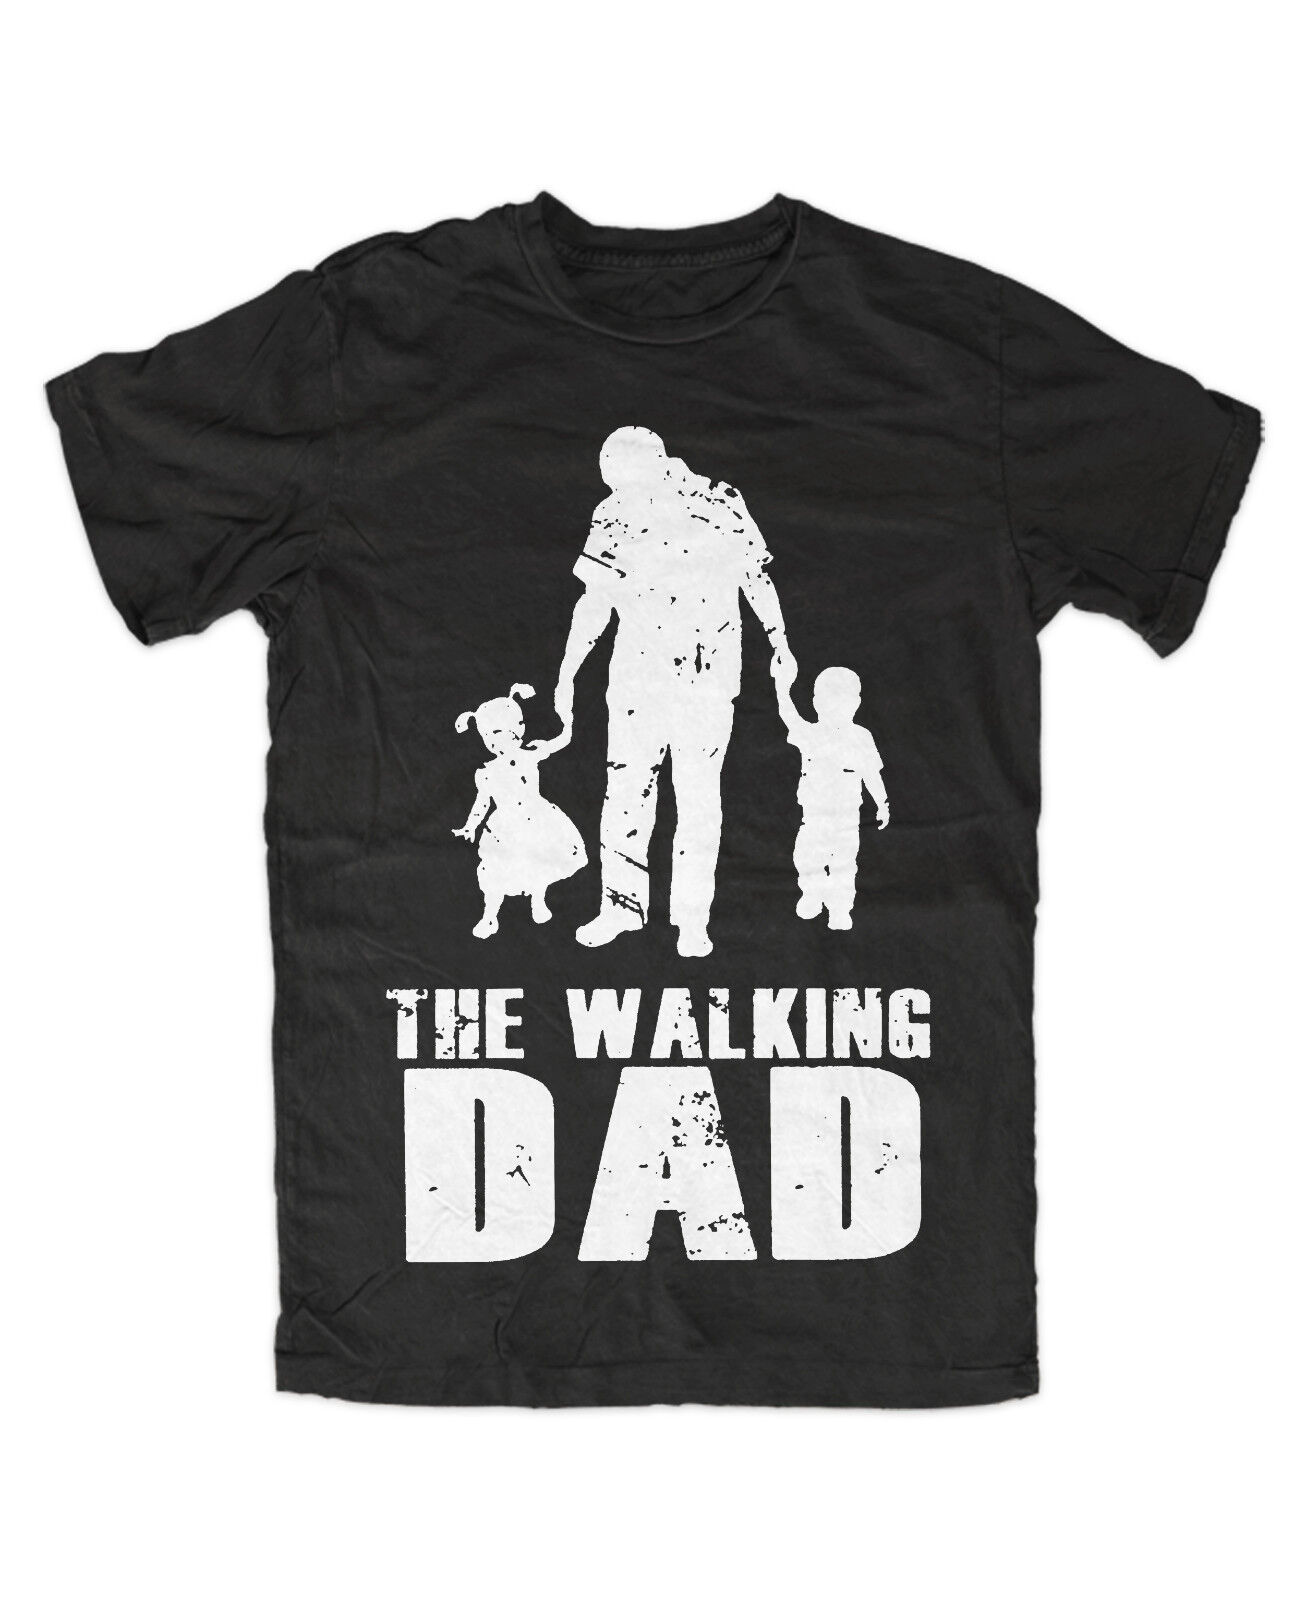 The Walking DAD T-Shirt Vater Spruch Fun Kult Familie PAPA Superheld